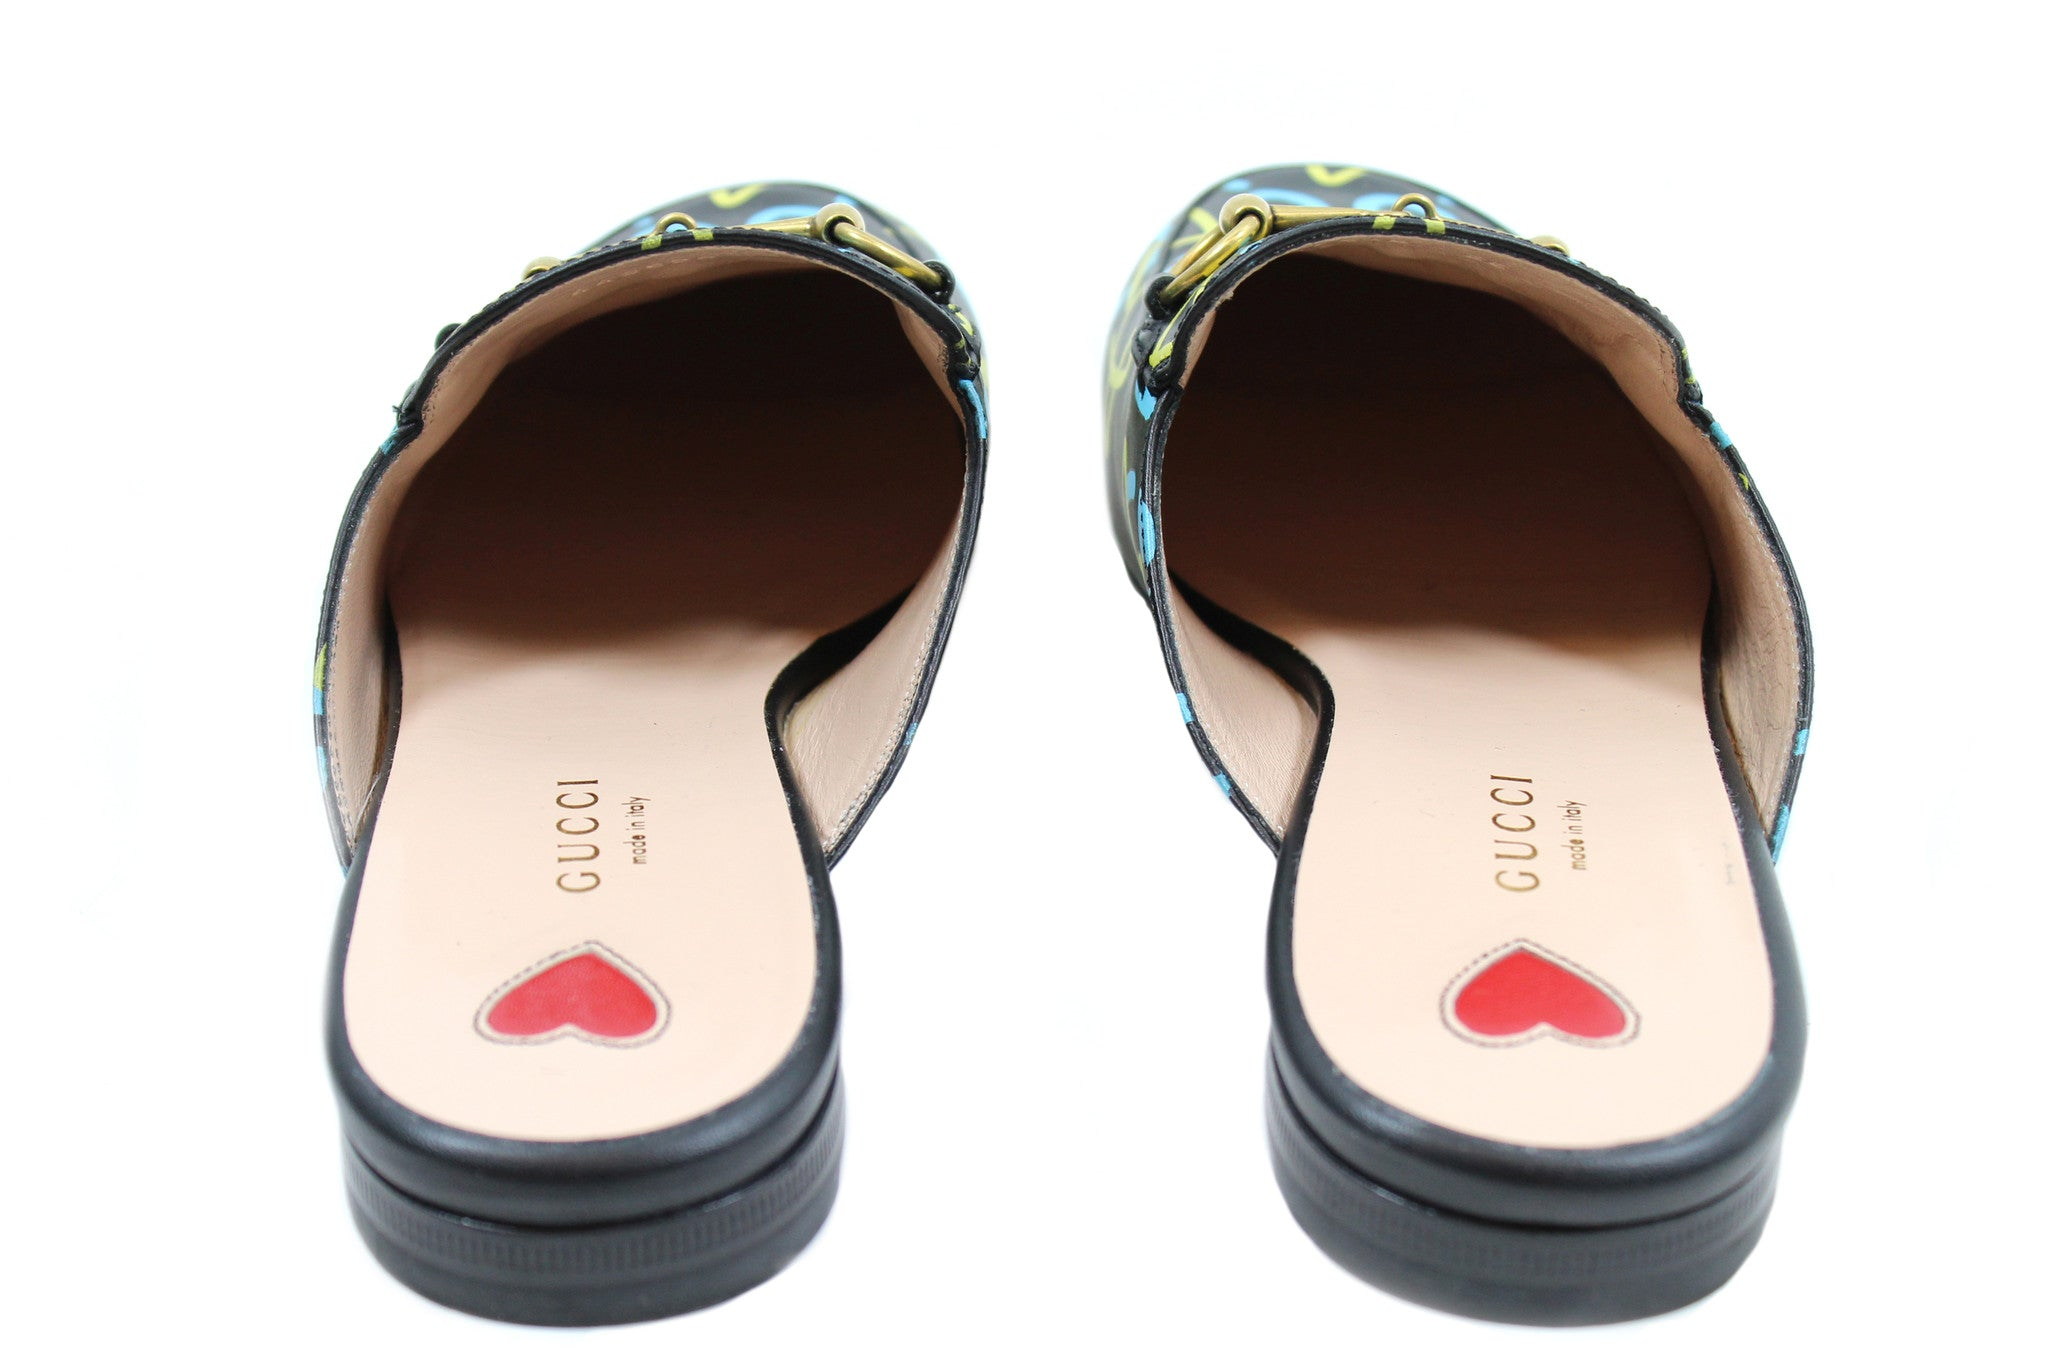 Gucci 'Princetown' Mule Loafers (Size 38)